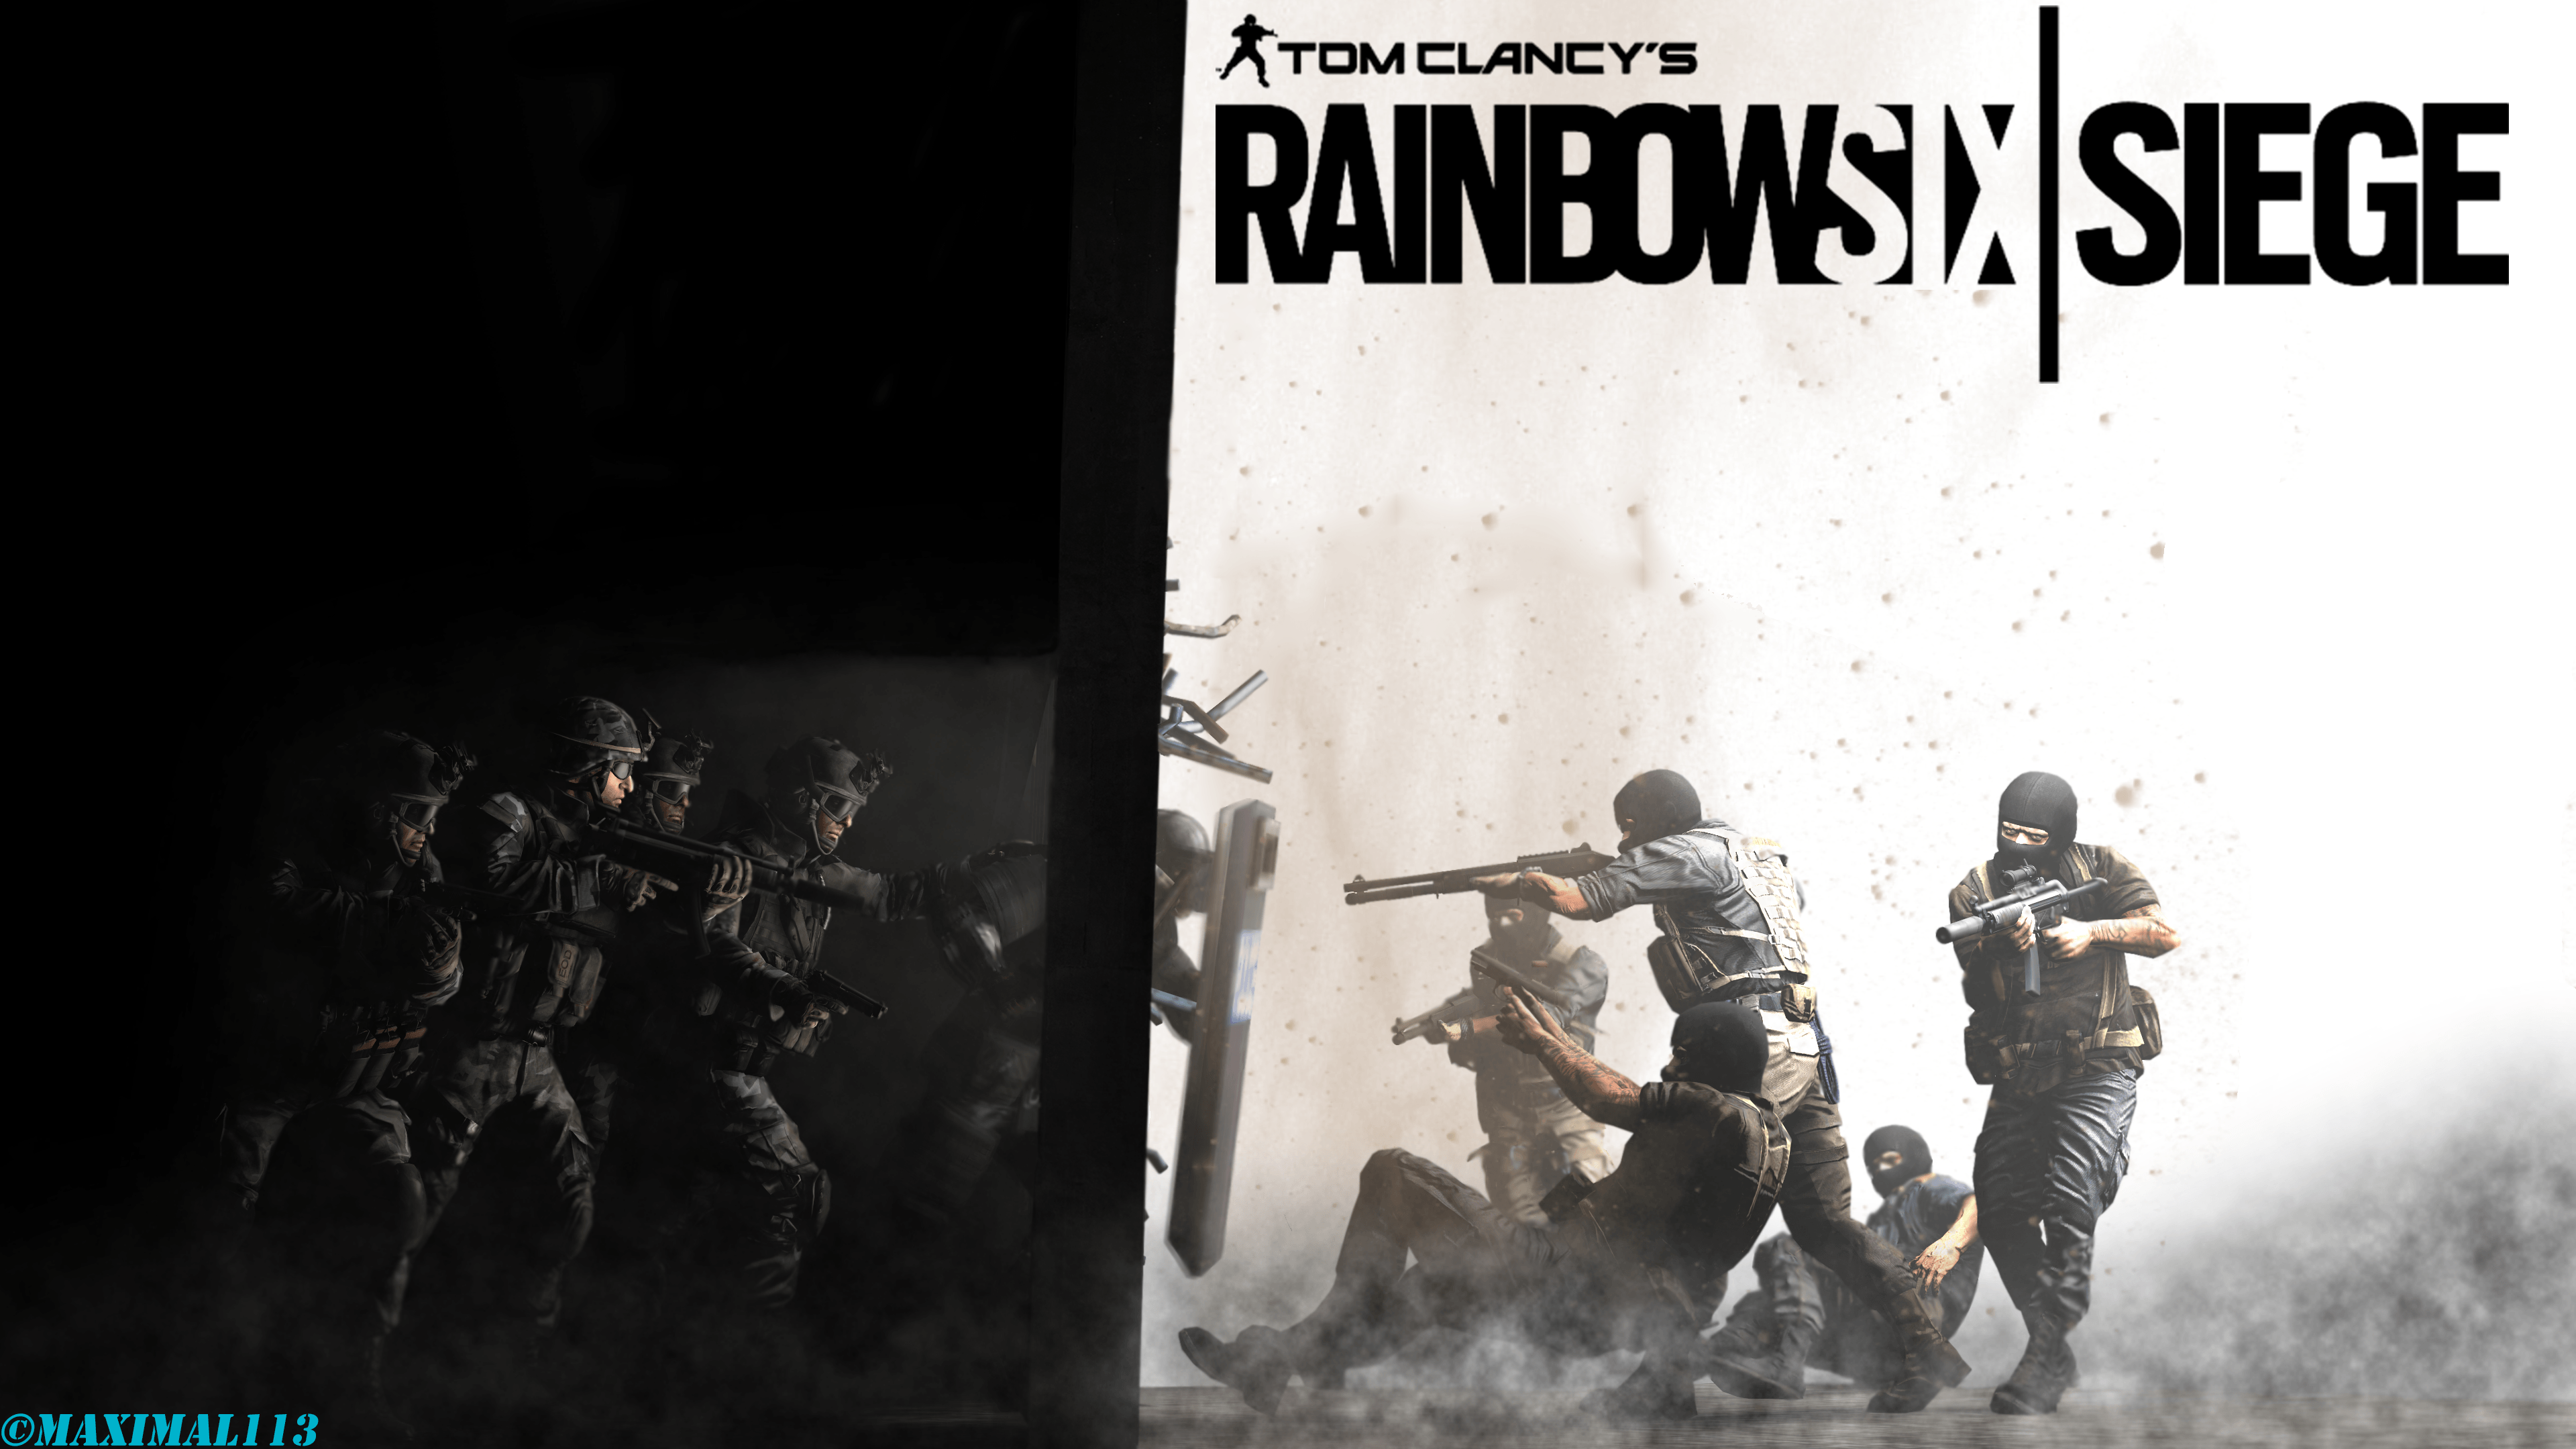 Tom Clancy's Rainbow Six Siege - wallpaper.